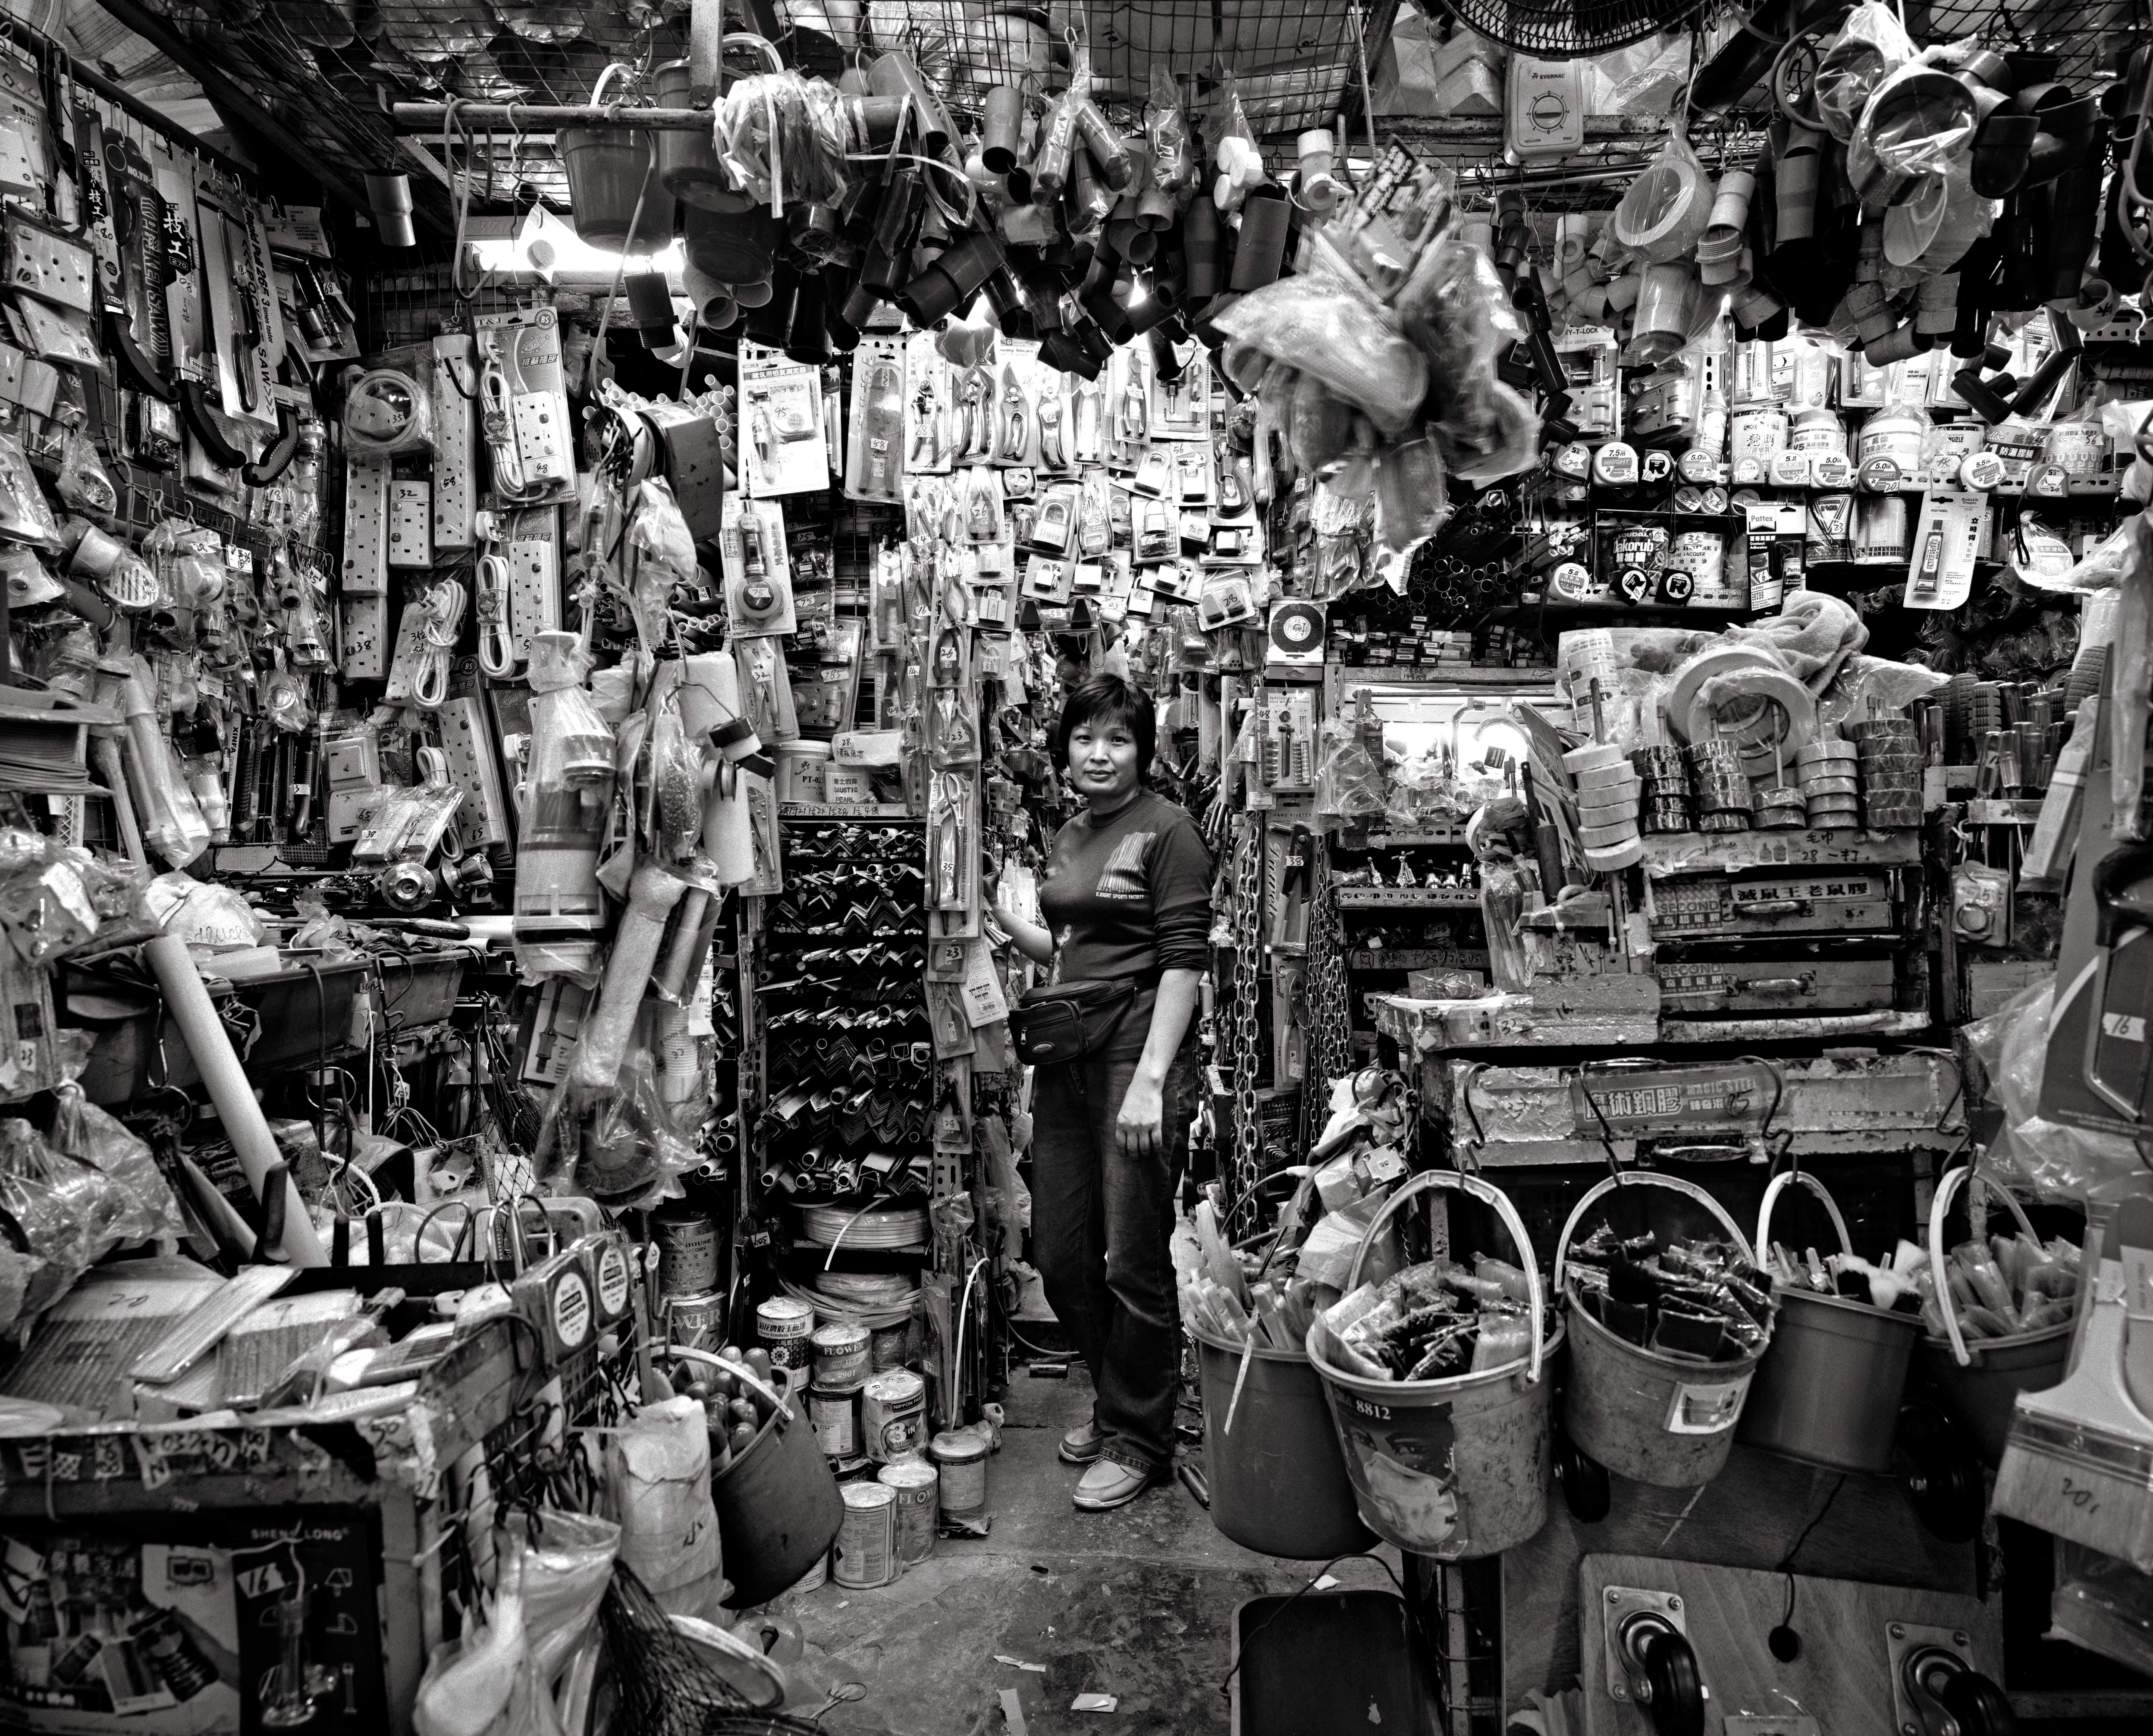 Hong Kong's iconic mom-and-pop shops are disappearing